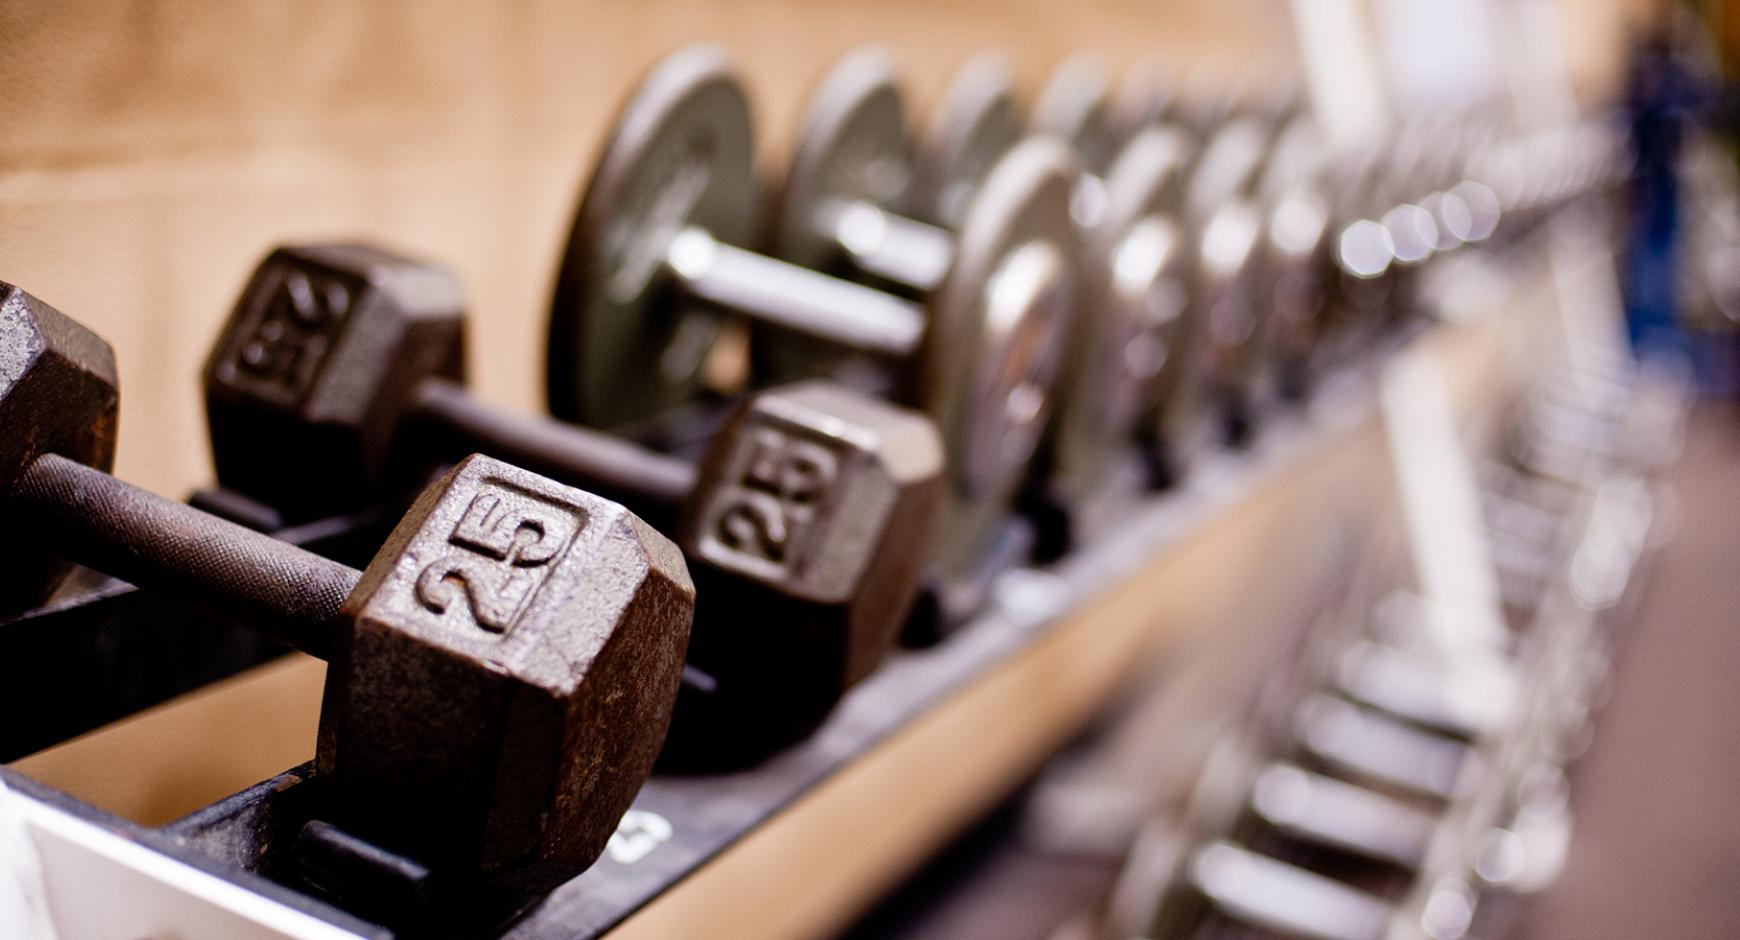 Dumbbells resting on a rack